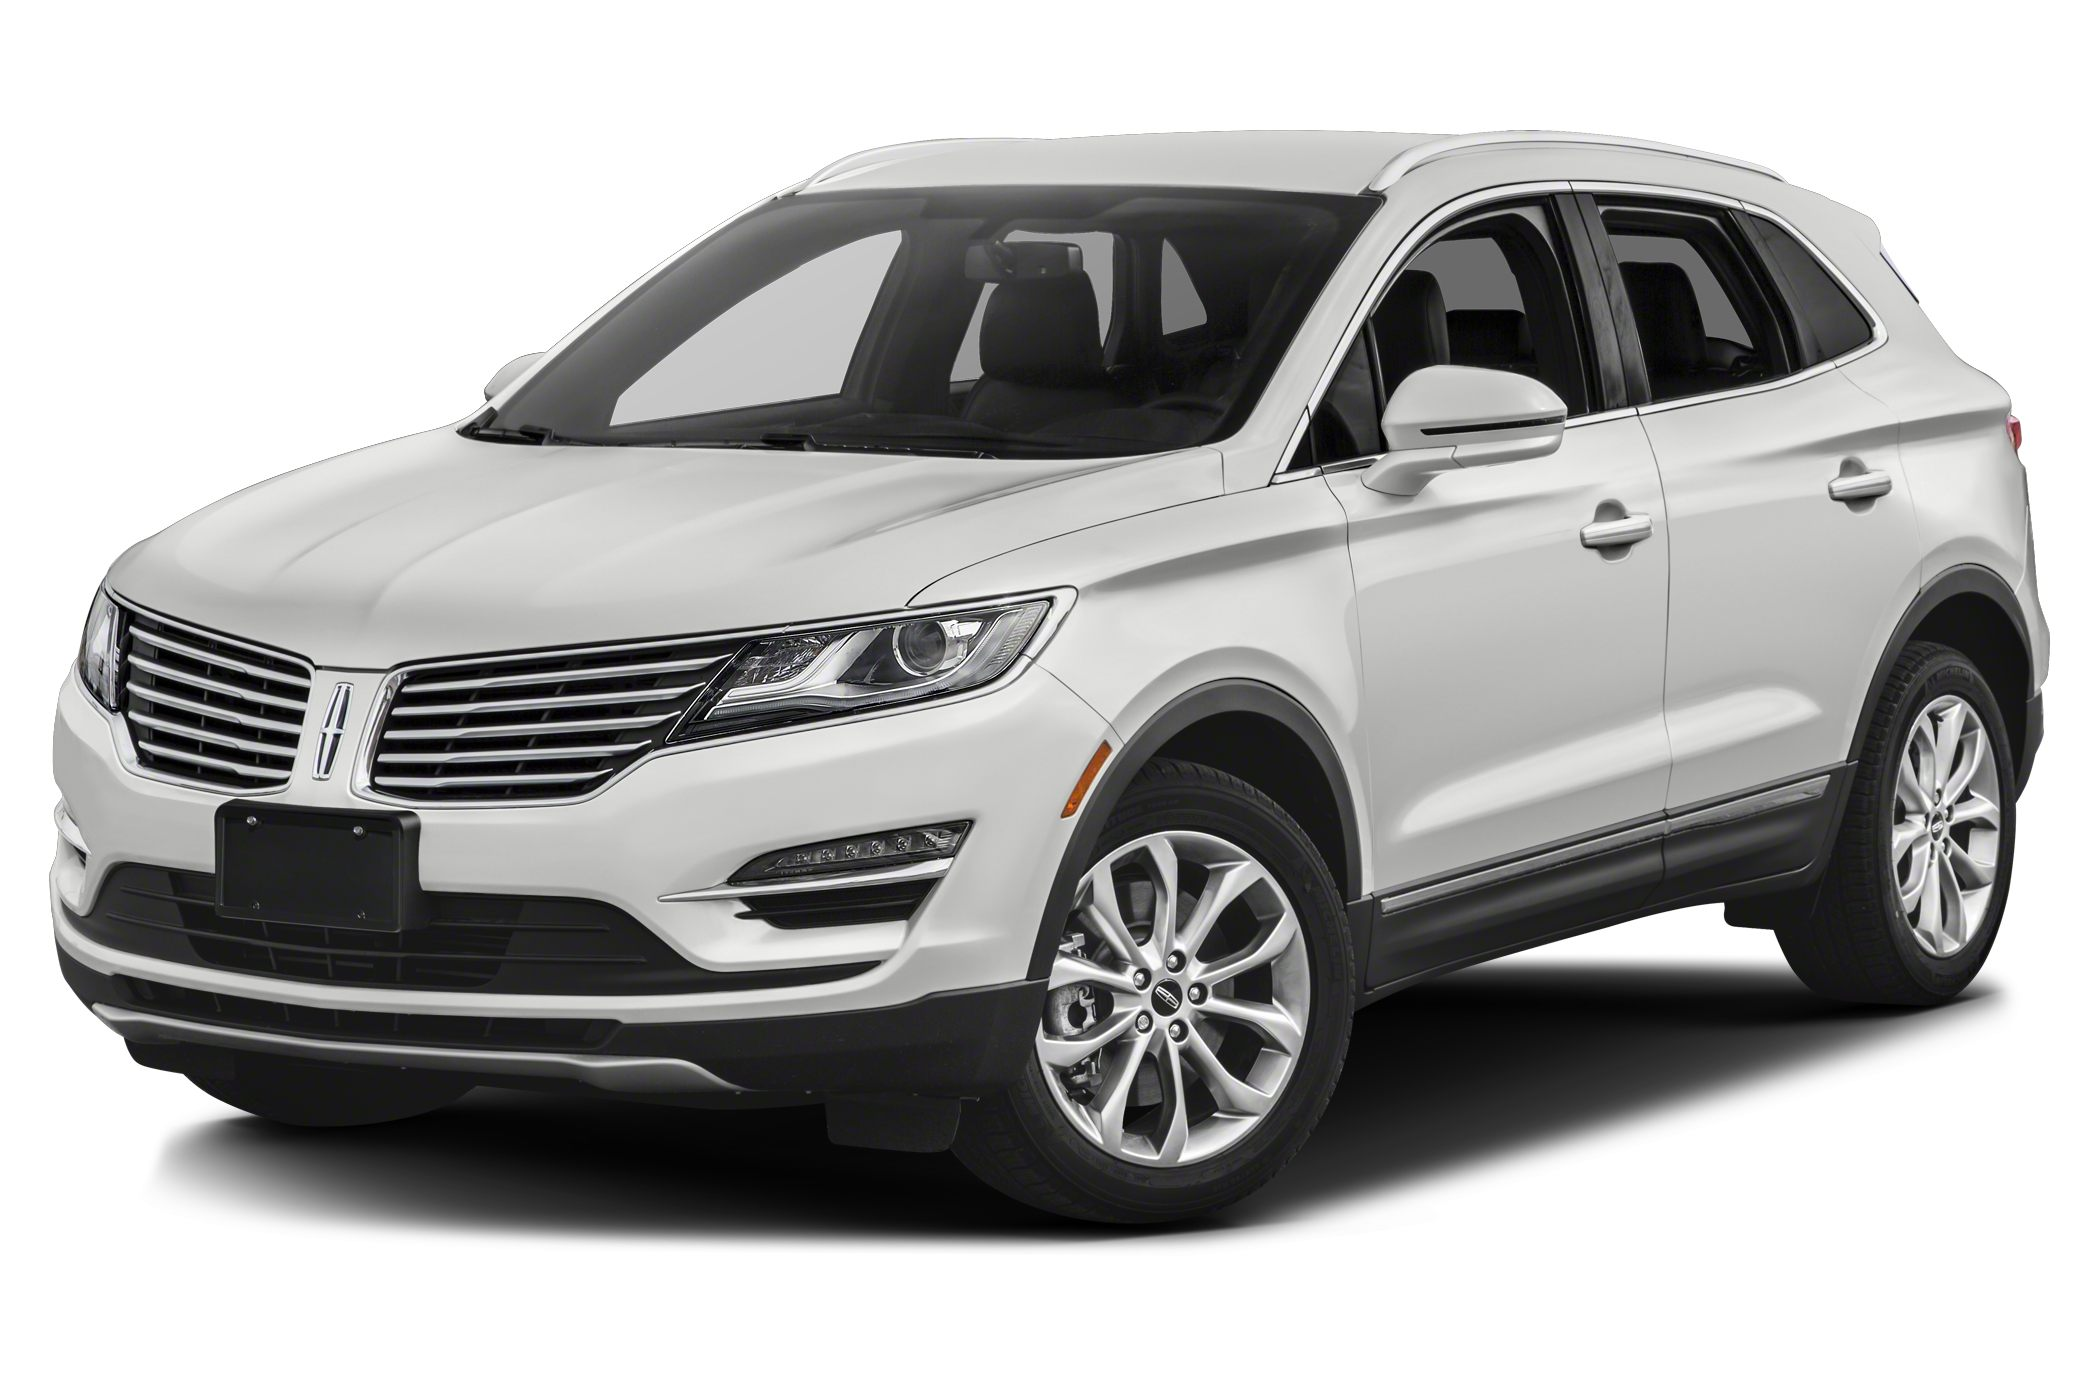 2015 Lincoln MKC Base SUV for sale in Bonita Springs for $37,720 with 15 miles